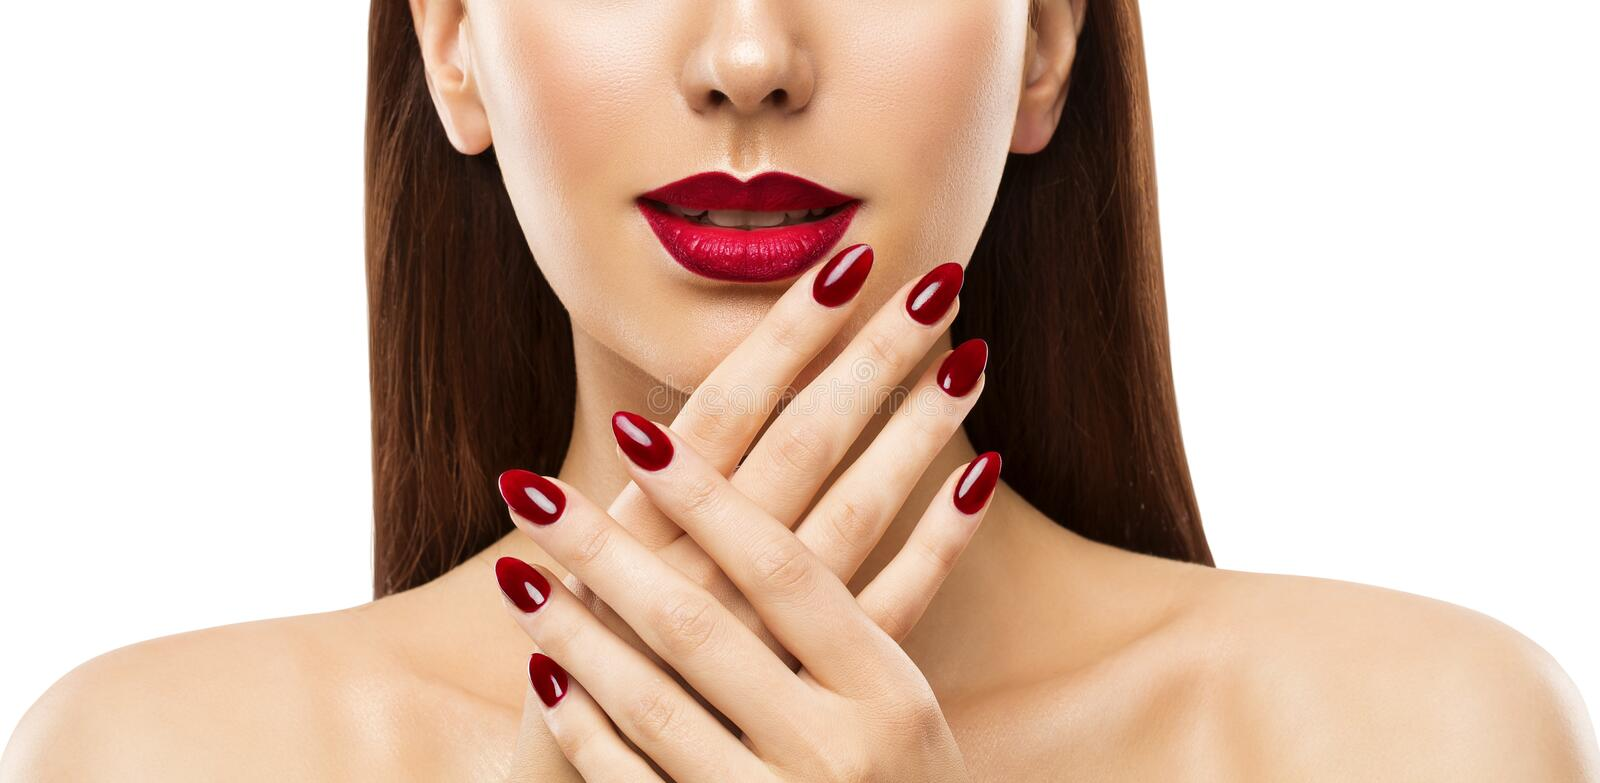 Nails Lips Woman Beauty, Model Face Makeup, Red Lipstick Make Up. And dark Nail stock images